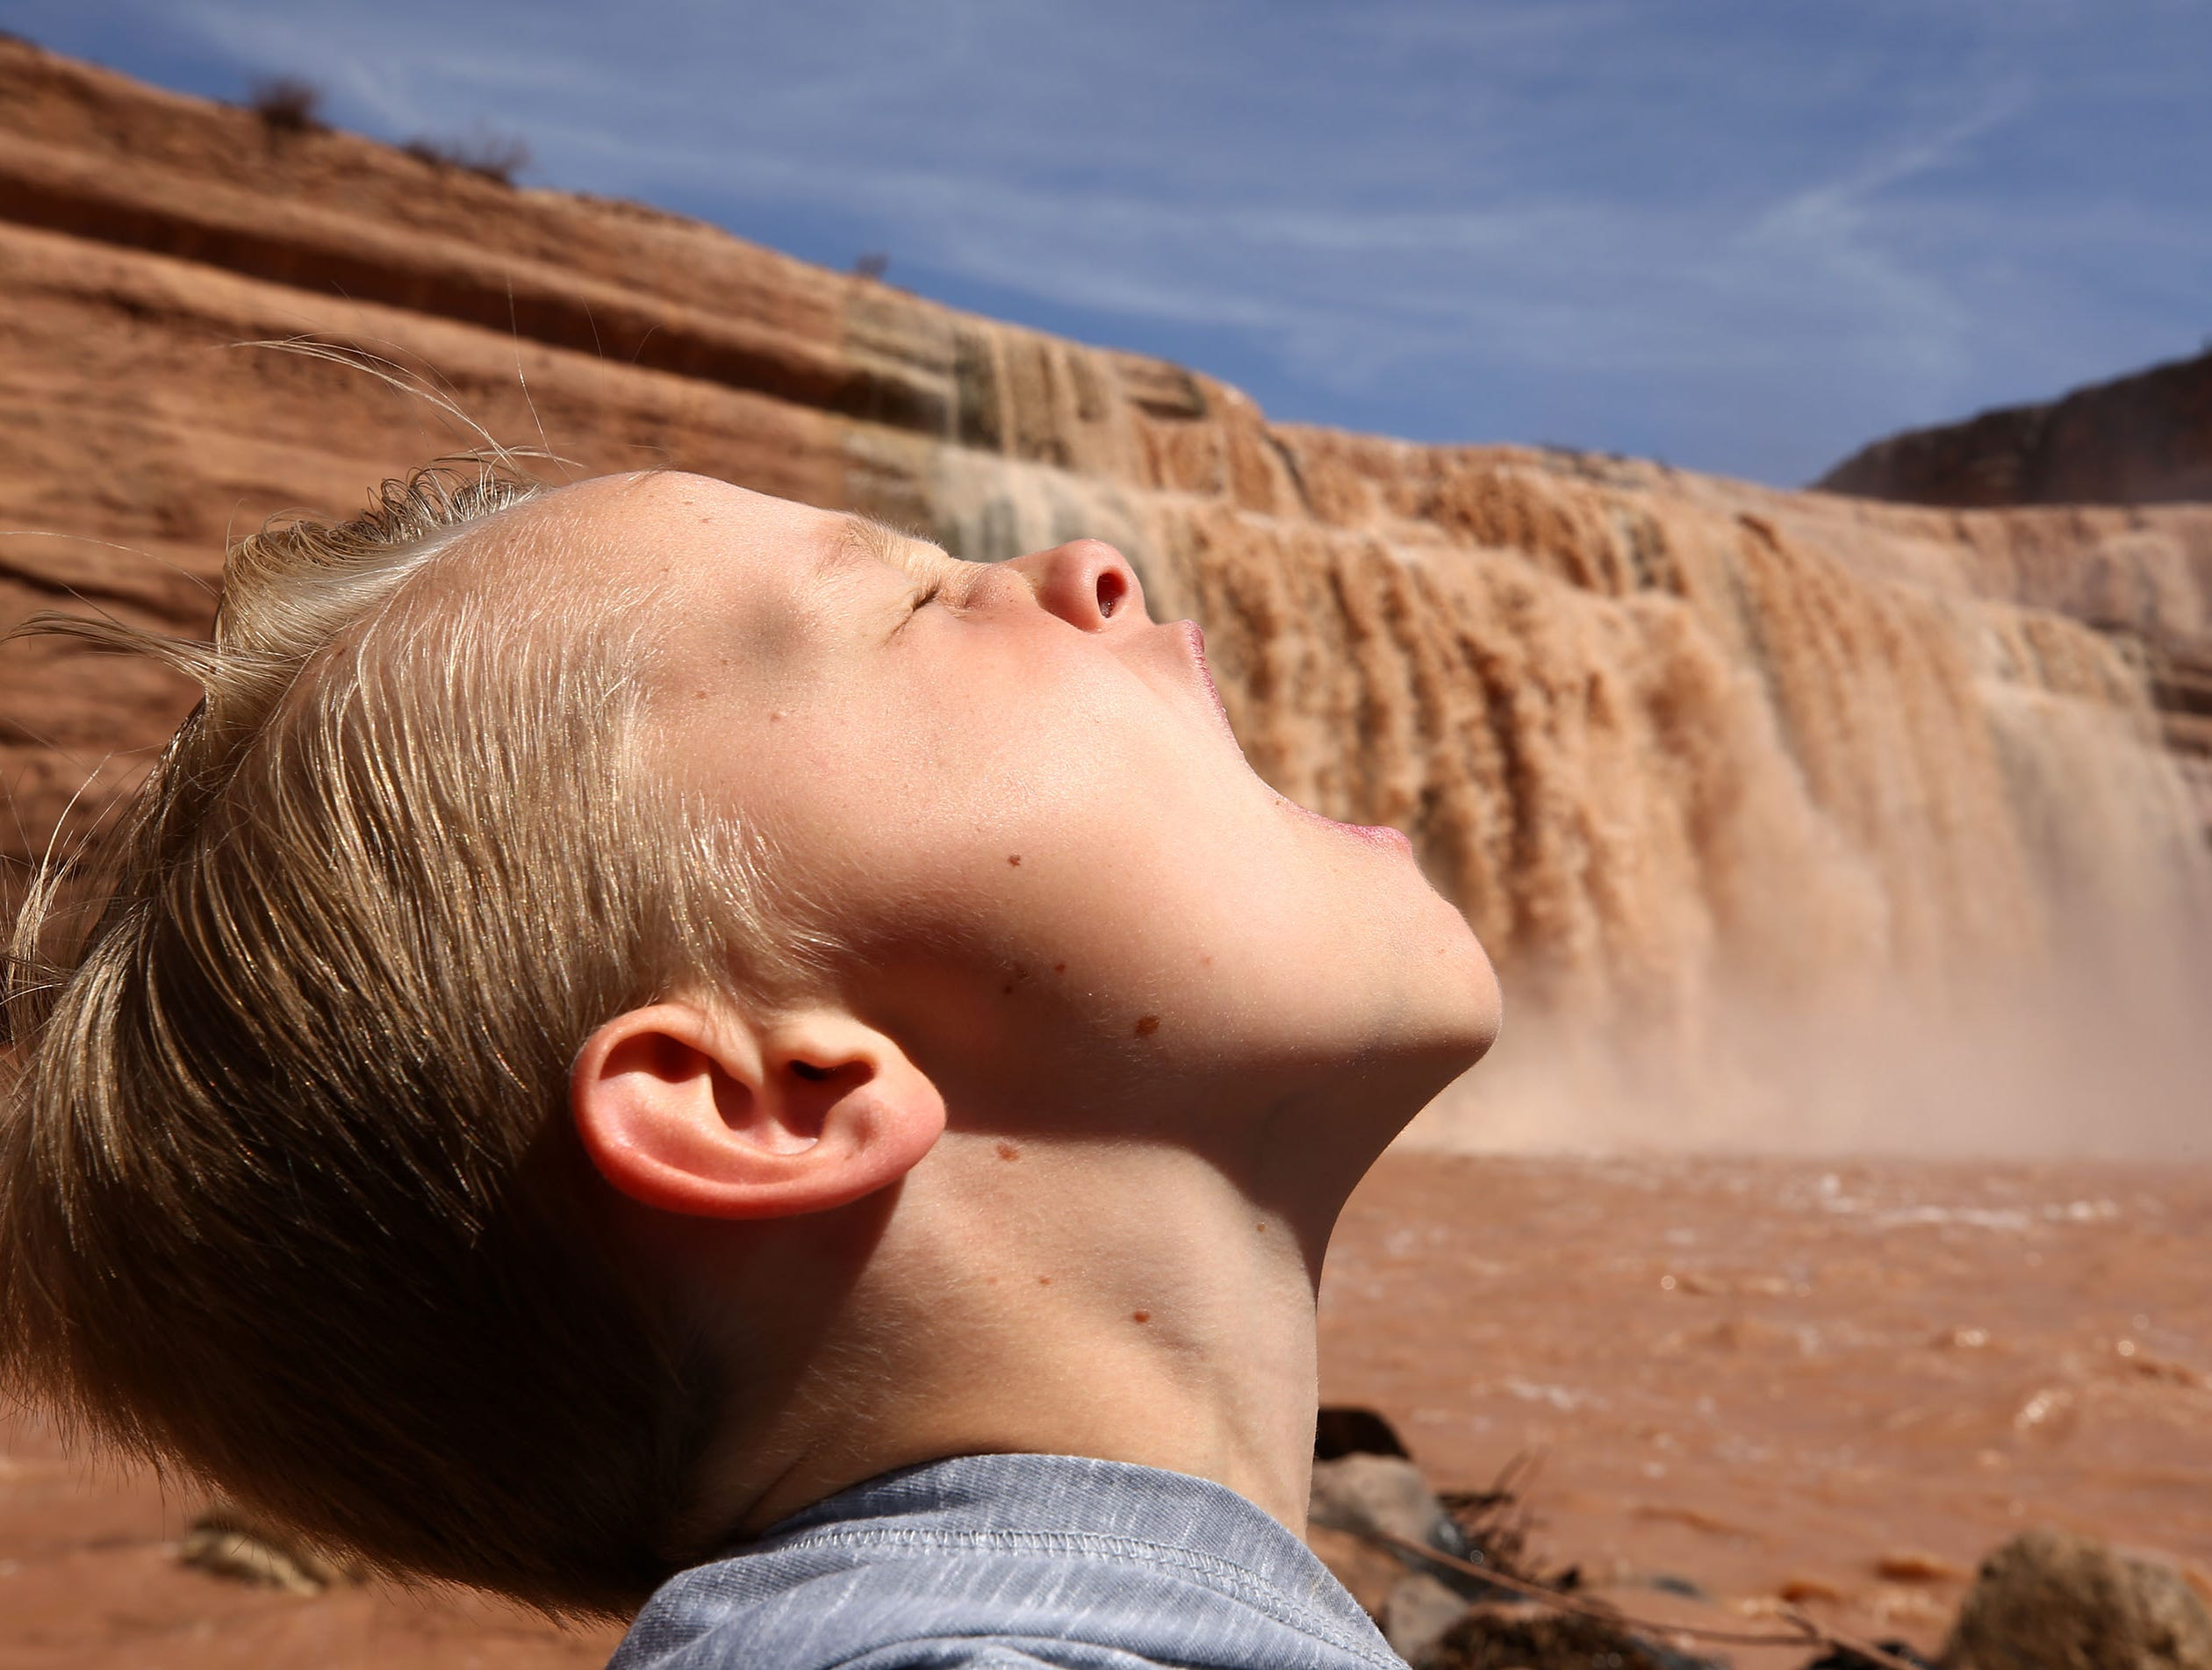 Luke St. John, age 7, has some fun at Grand Falls in the Painted Desert on the Navajo Nation on March 28, 2019, near Leupp, Arizona. Melted snow and rain travels down the Little Colorado River to the 185-foot fall a.k.a. Chocolate Falls. Grand Falls is 18 feet taller than Niagara Falls.